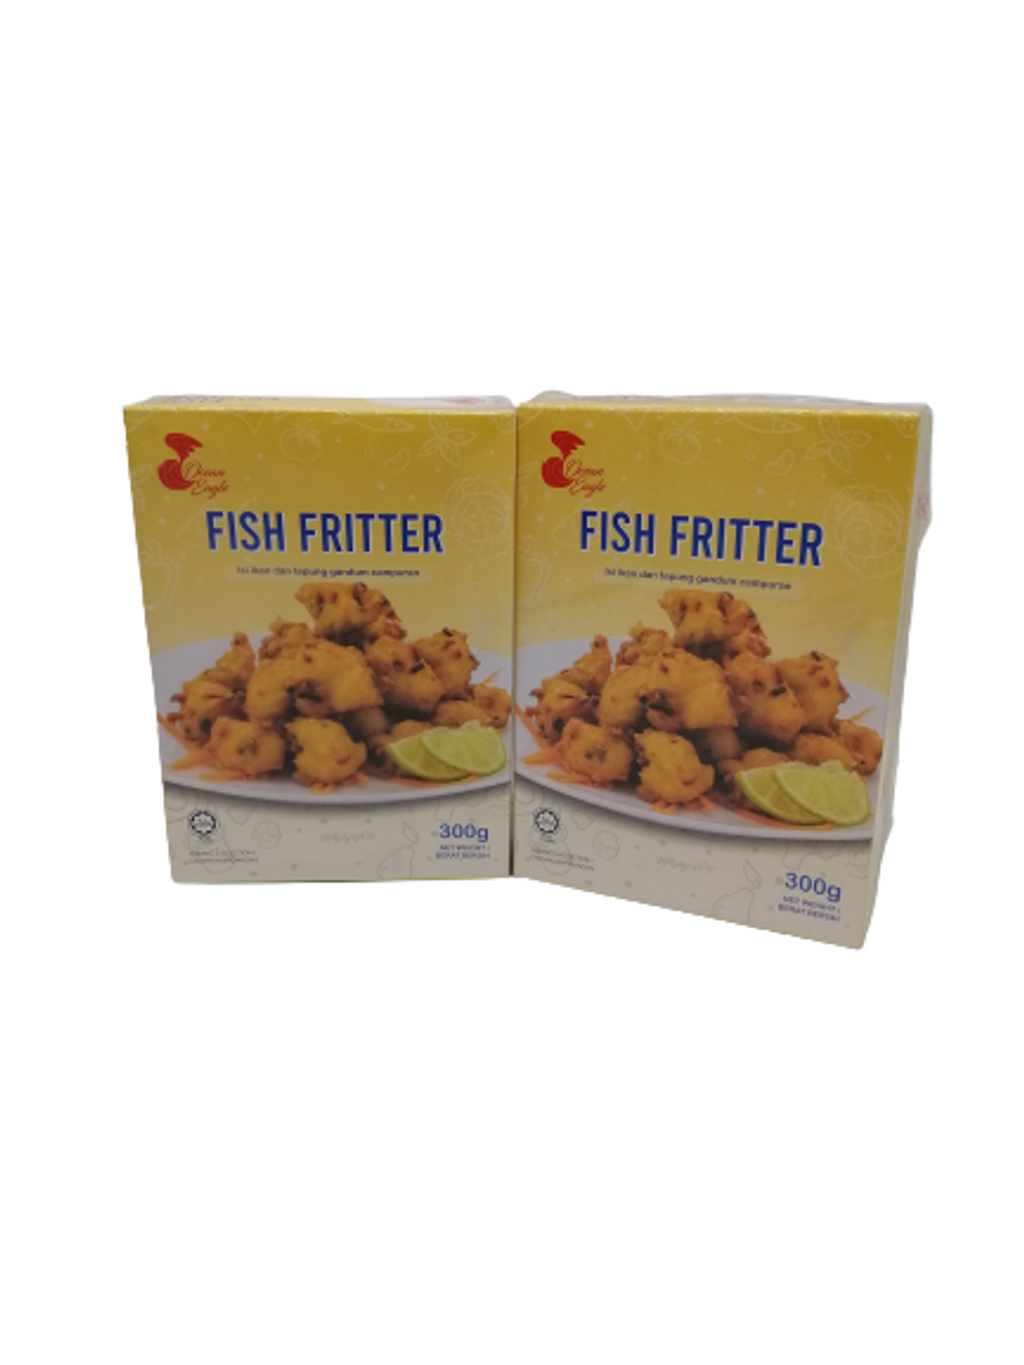 Ocean_Eagle_Fish_Fritter_300gm_5-removebg-preview.png